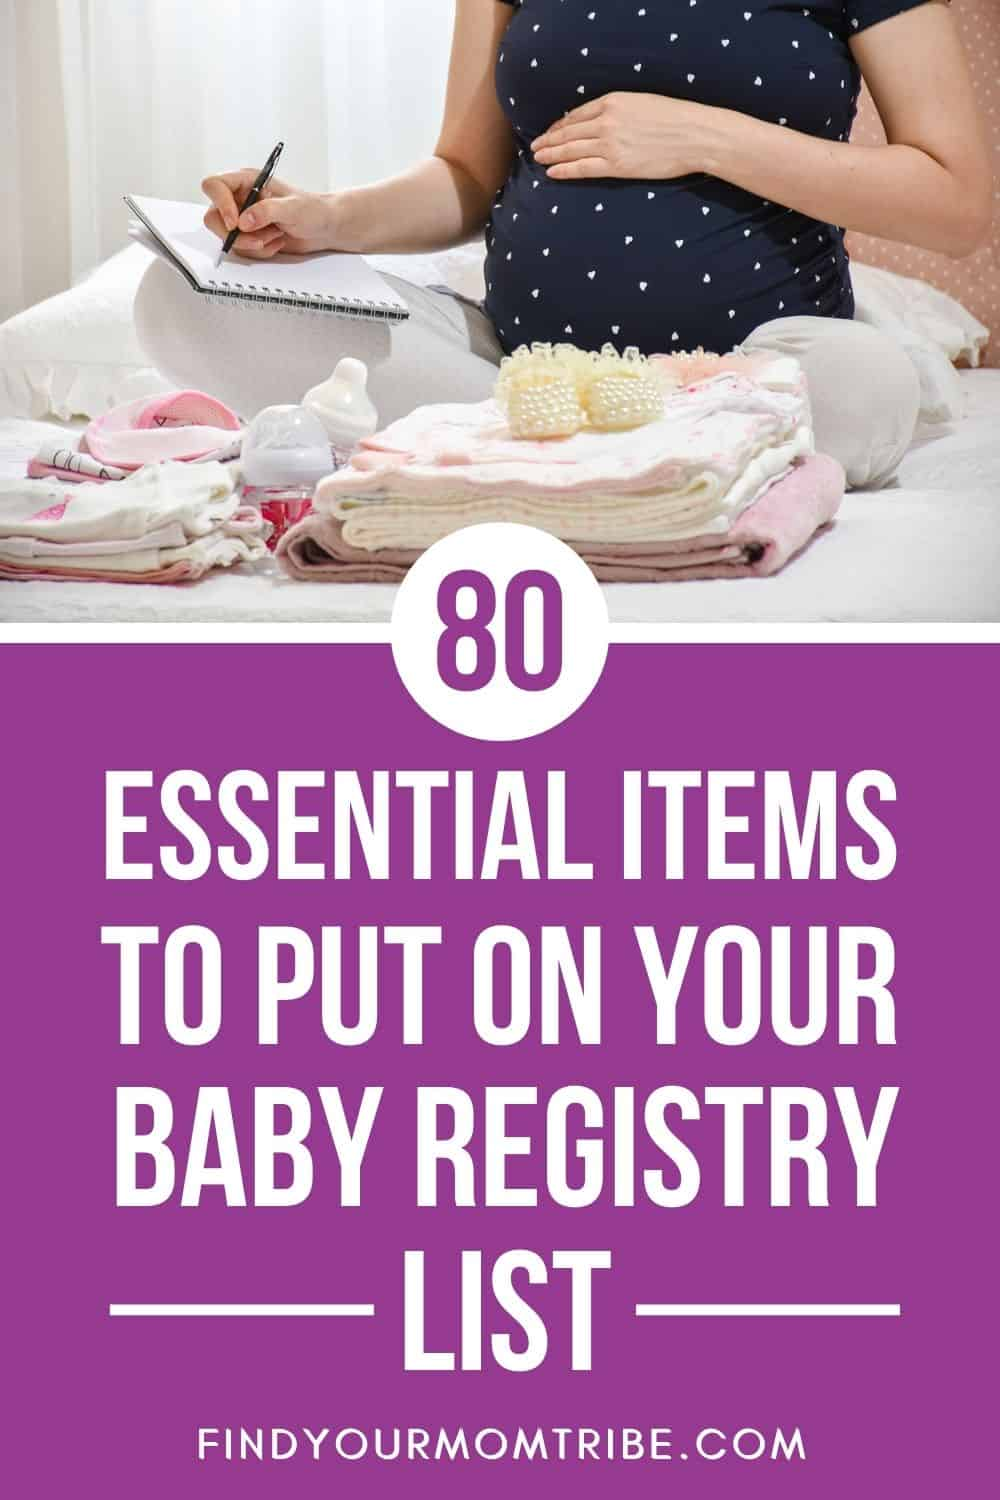 80 Essential Items To Put On Your Baby Registry List Pinterest